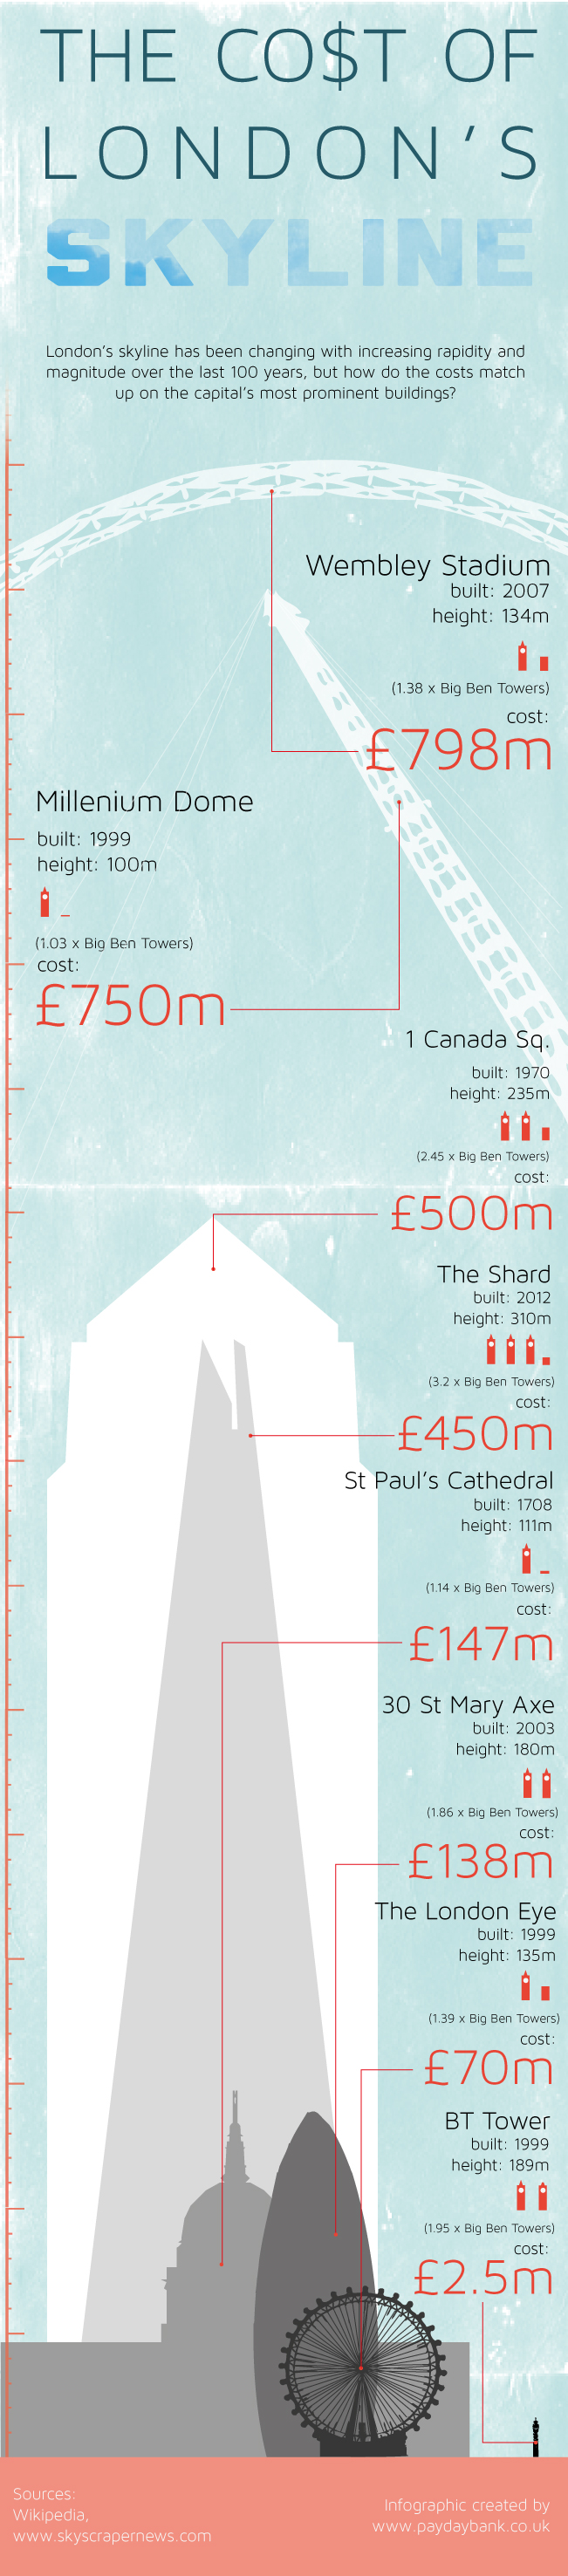 the-cost-of-londons-skyline_507c25fe103be